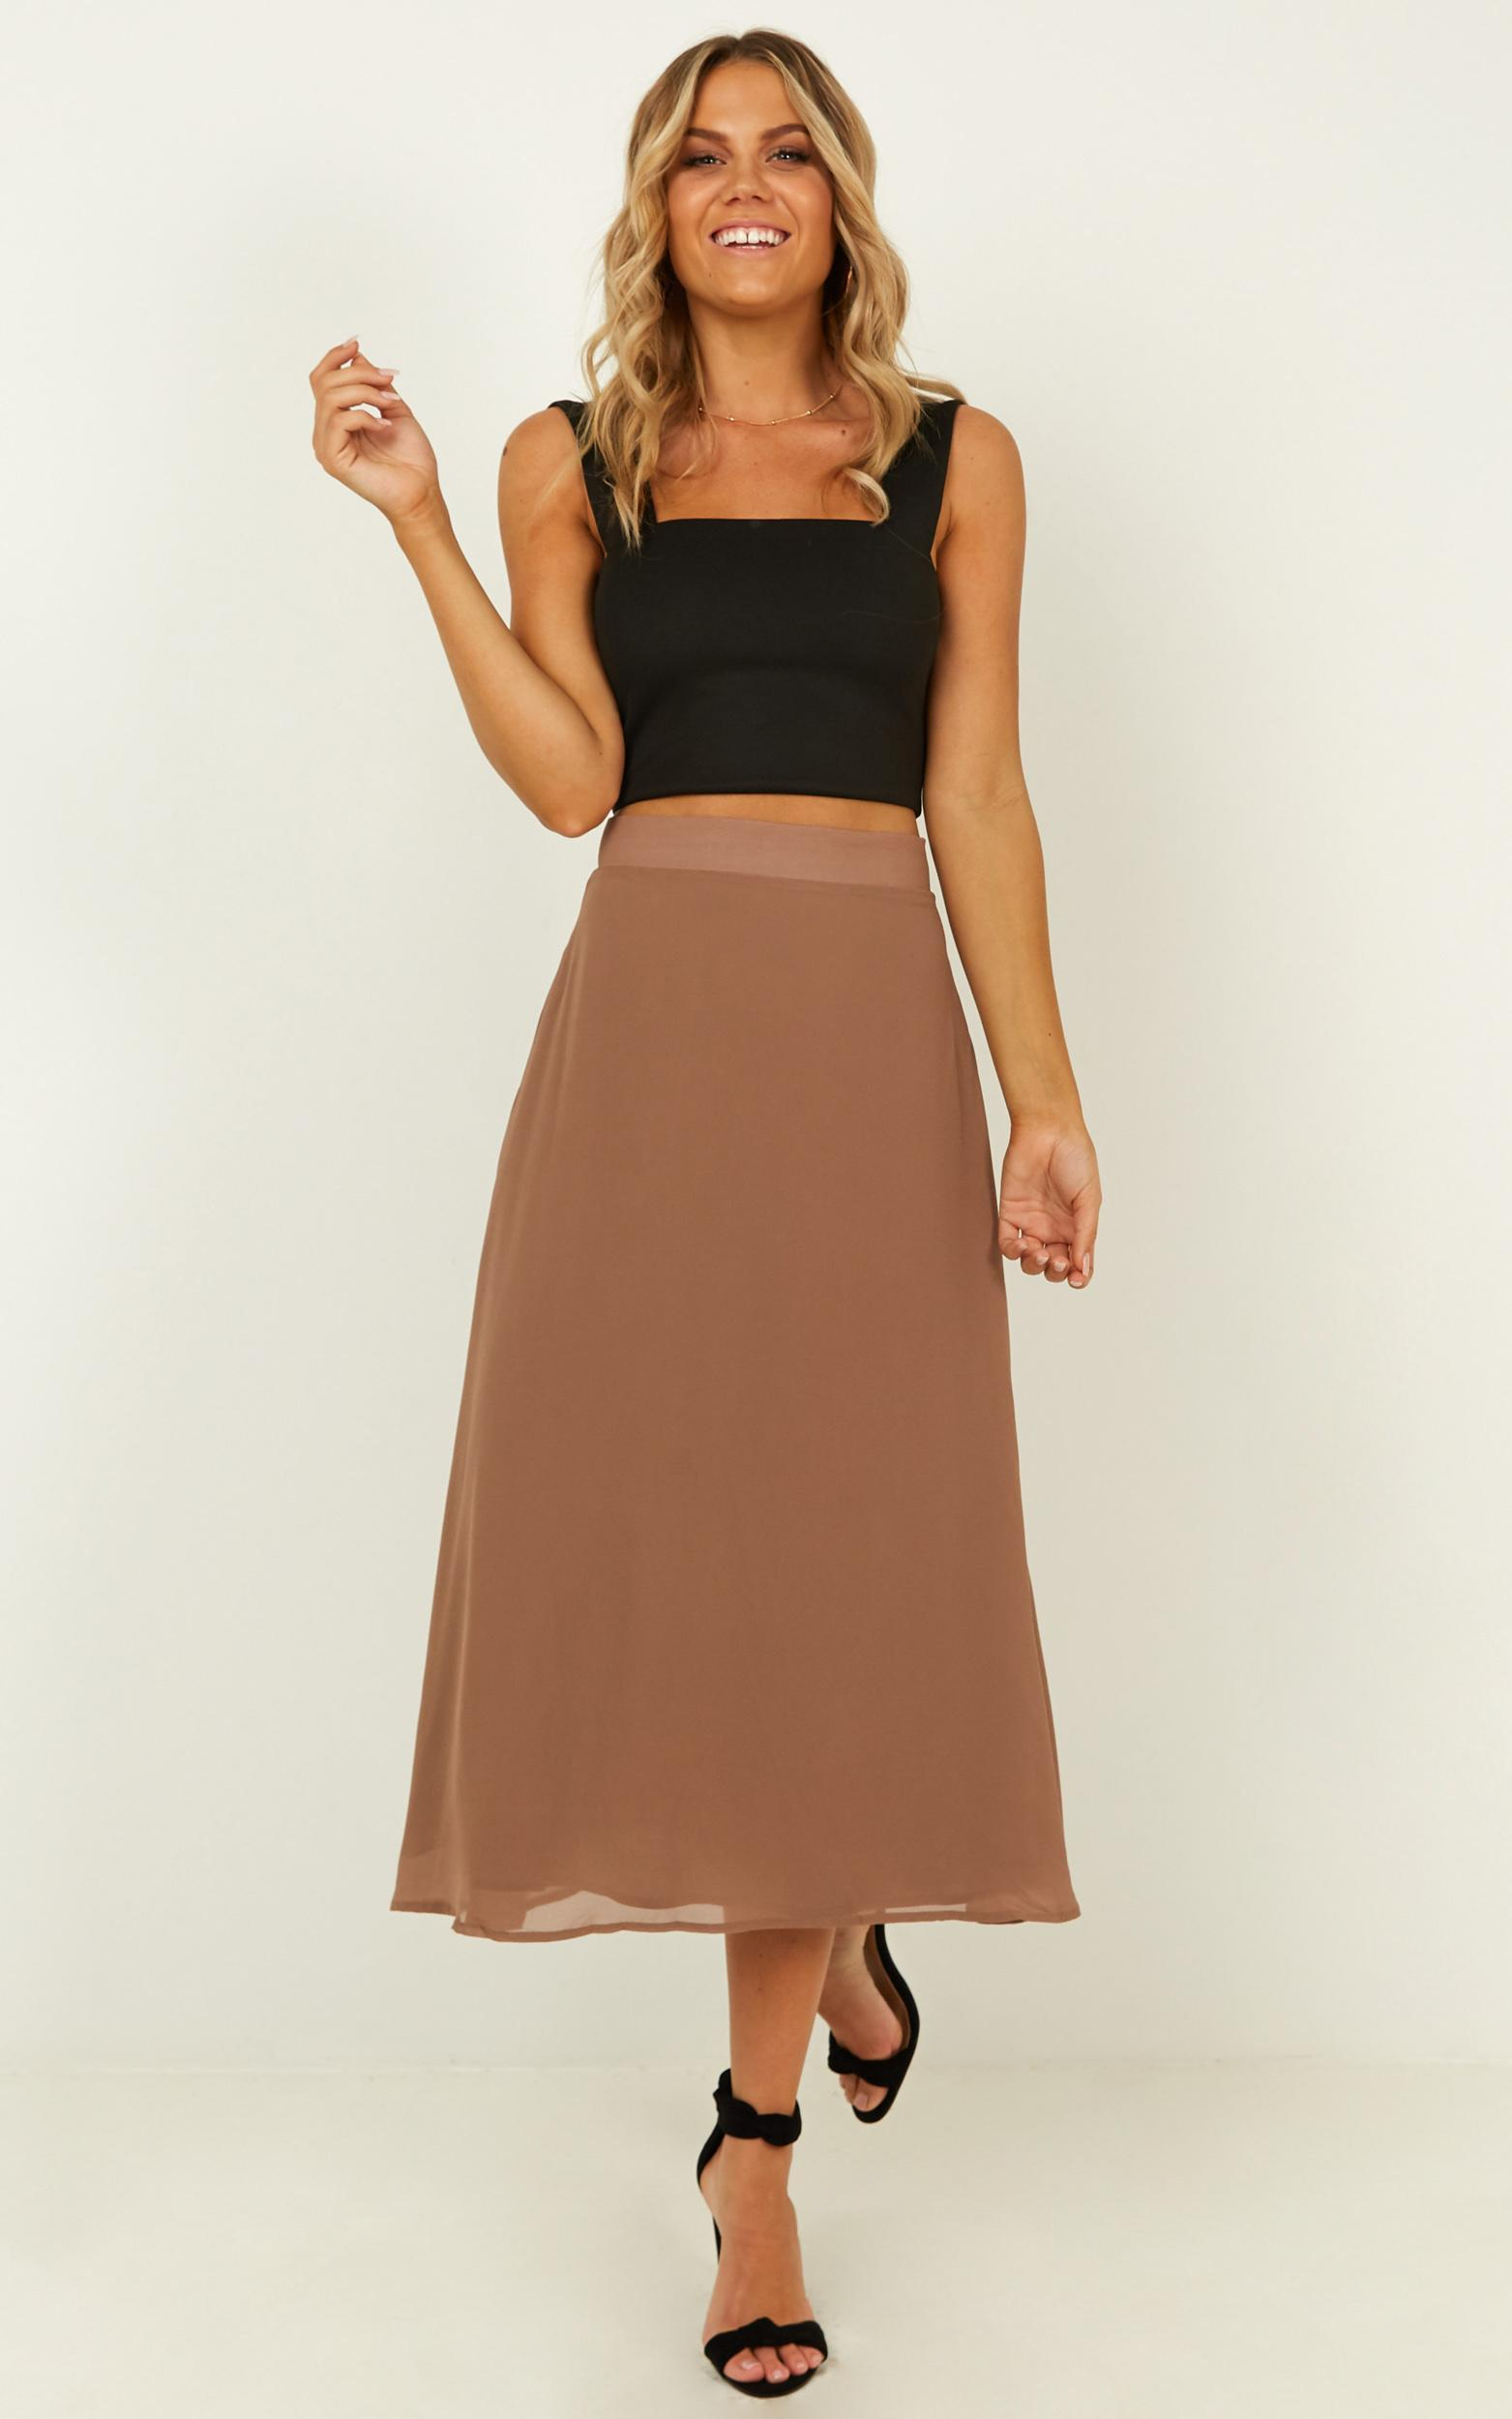 Forget You Not Skirt in mocha - 18 (XXXL), Mocha, hi-res image number null